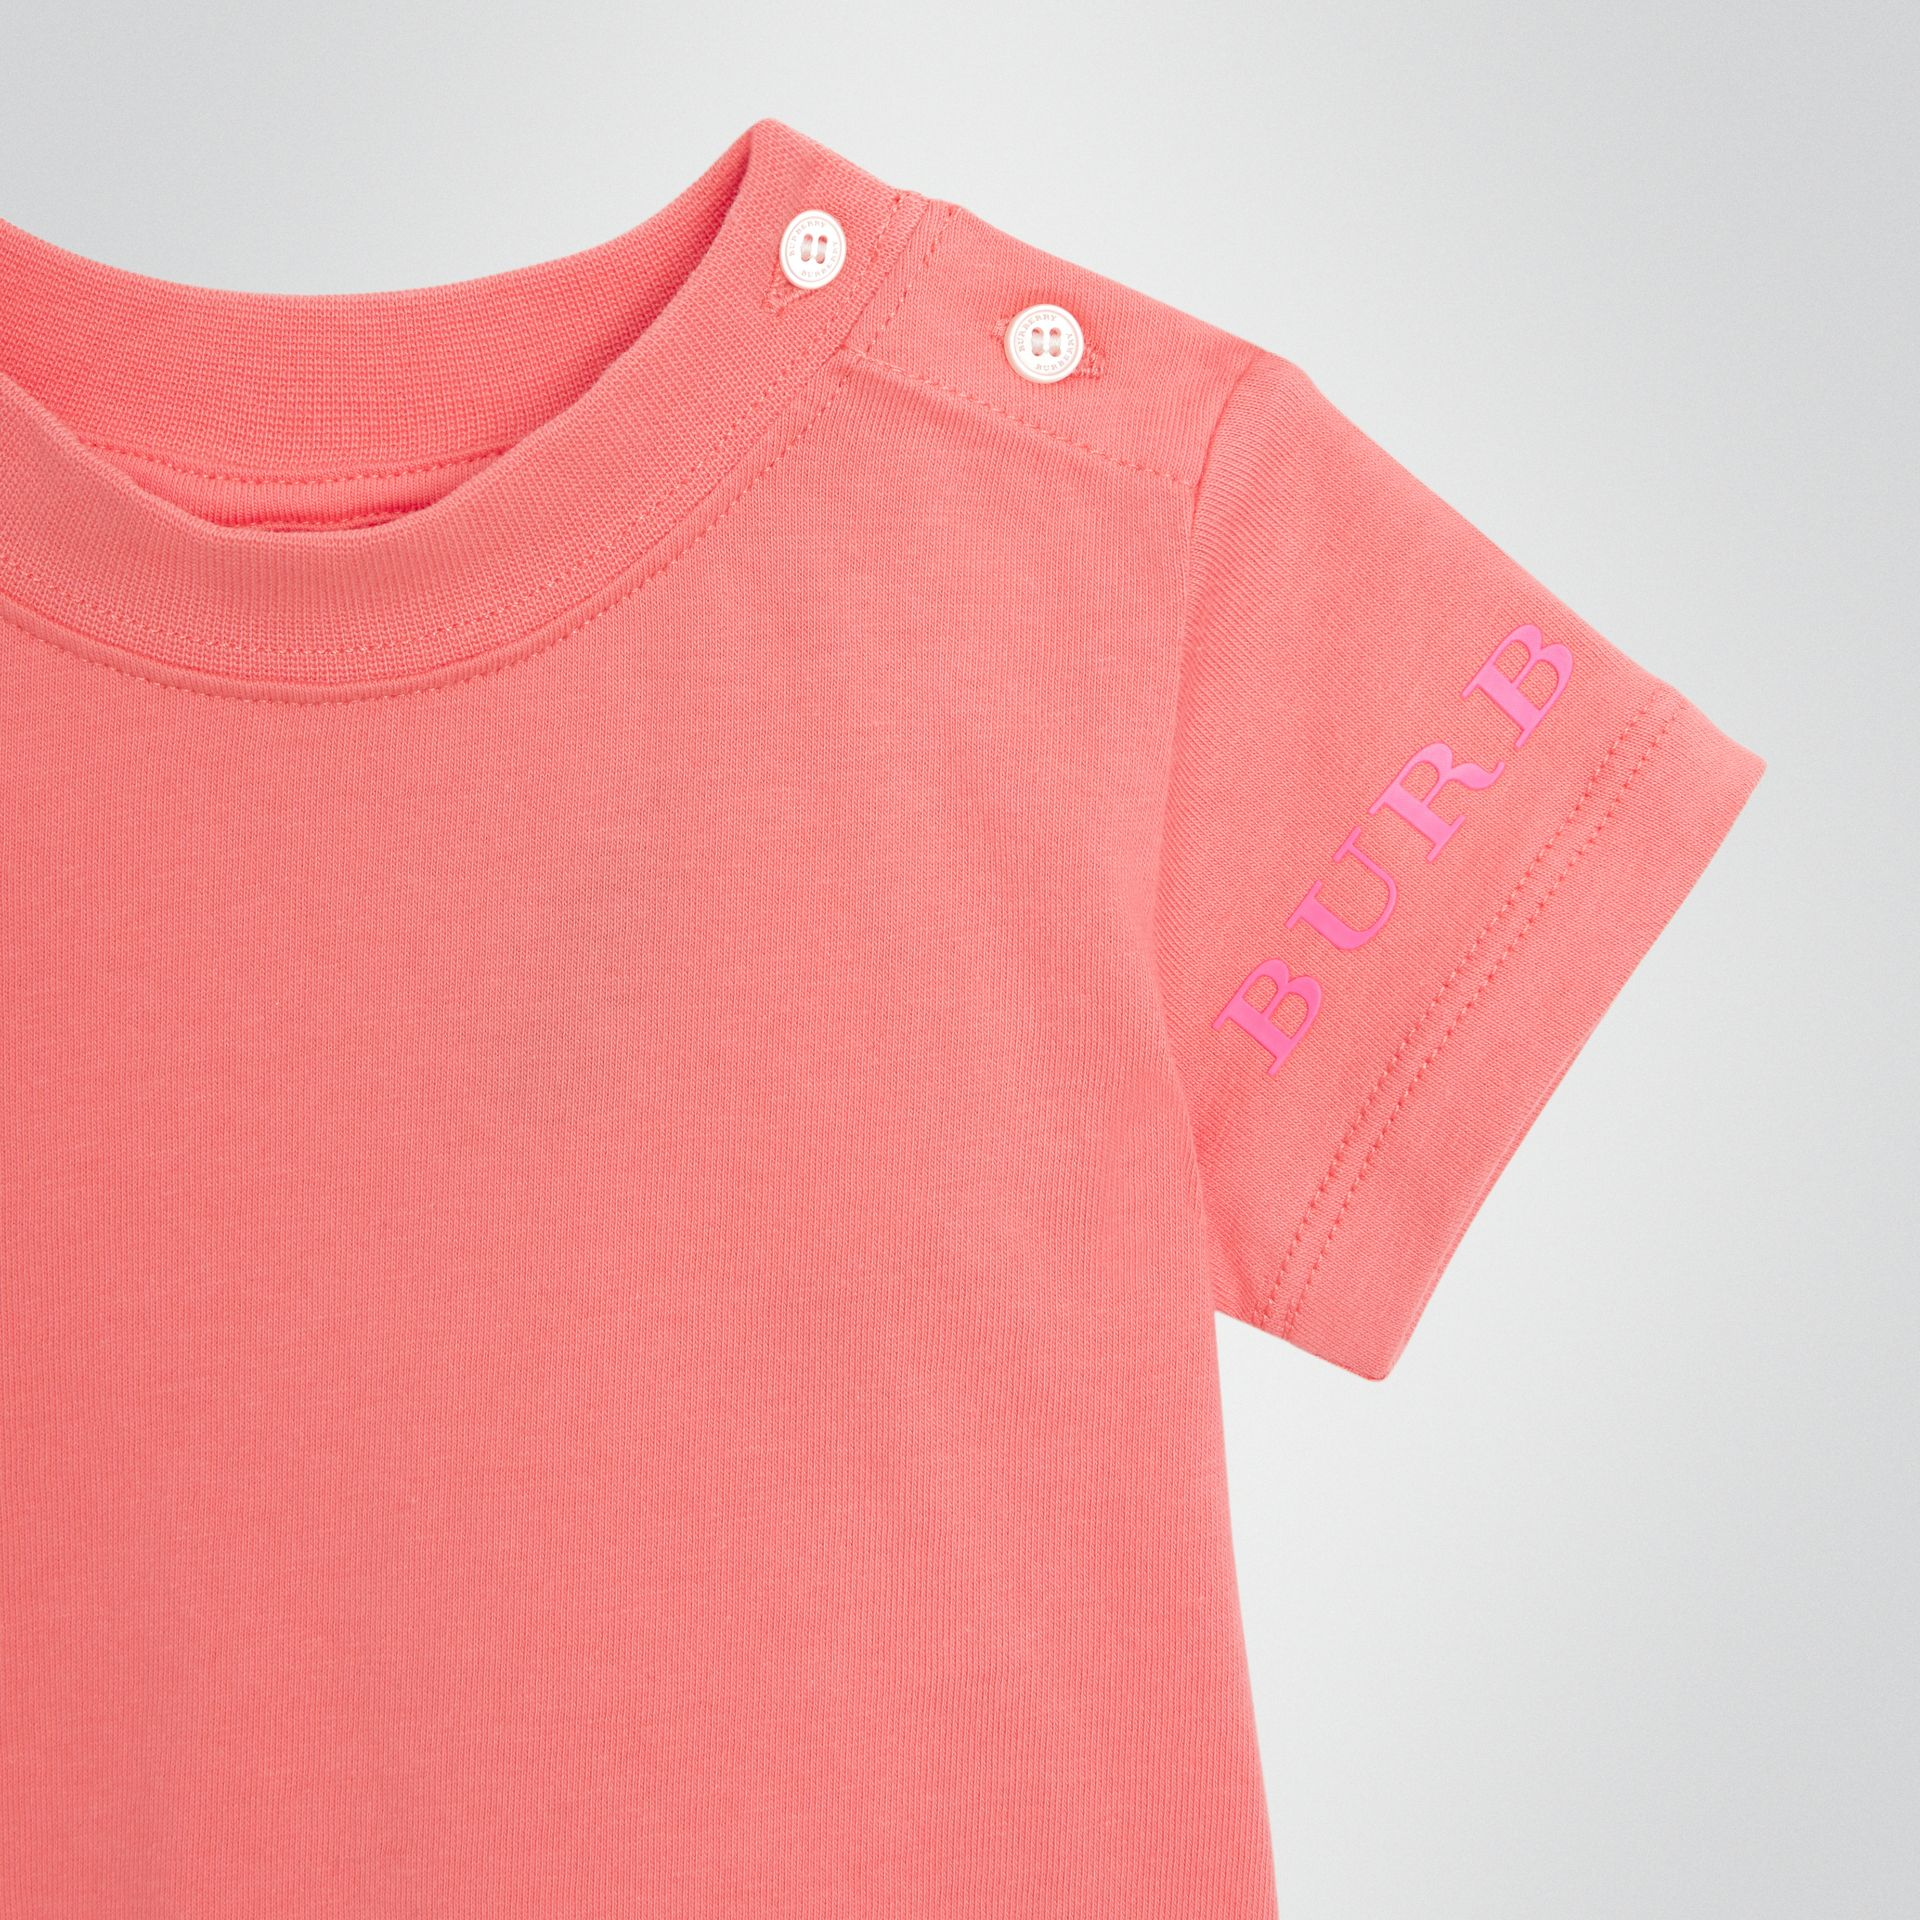 T-shirt en coton avec logo imprimé (Rose Vif) - Enfant | Burberry - photo de la galerie 4